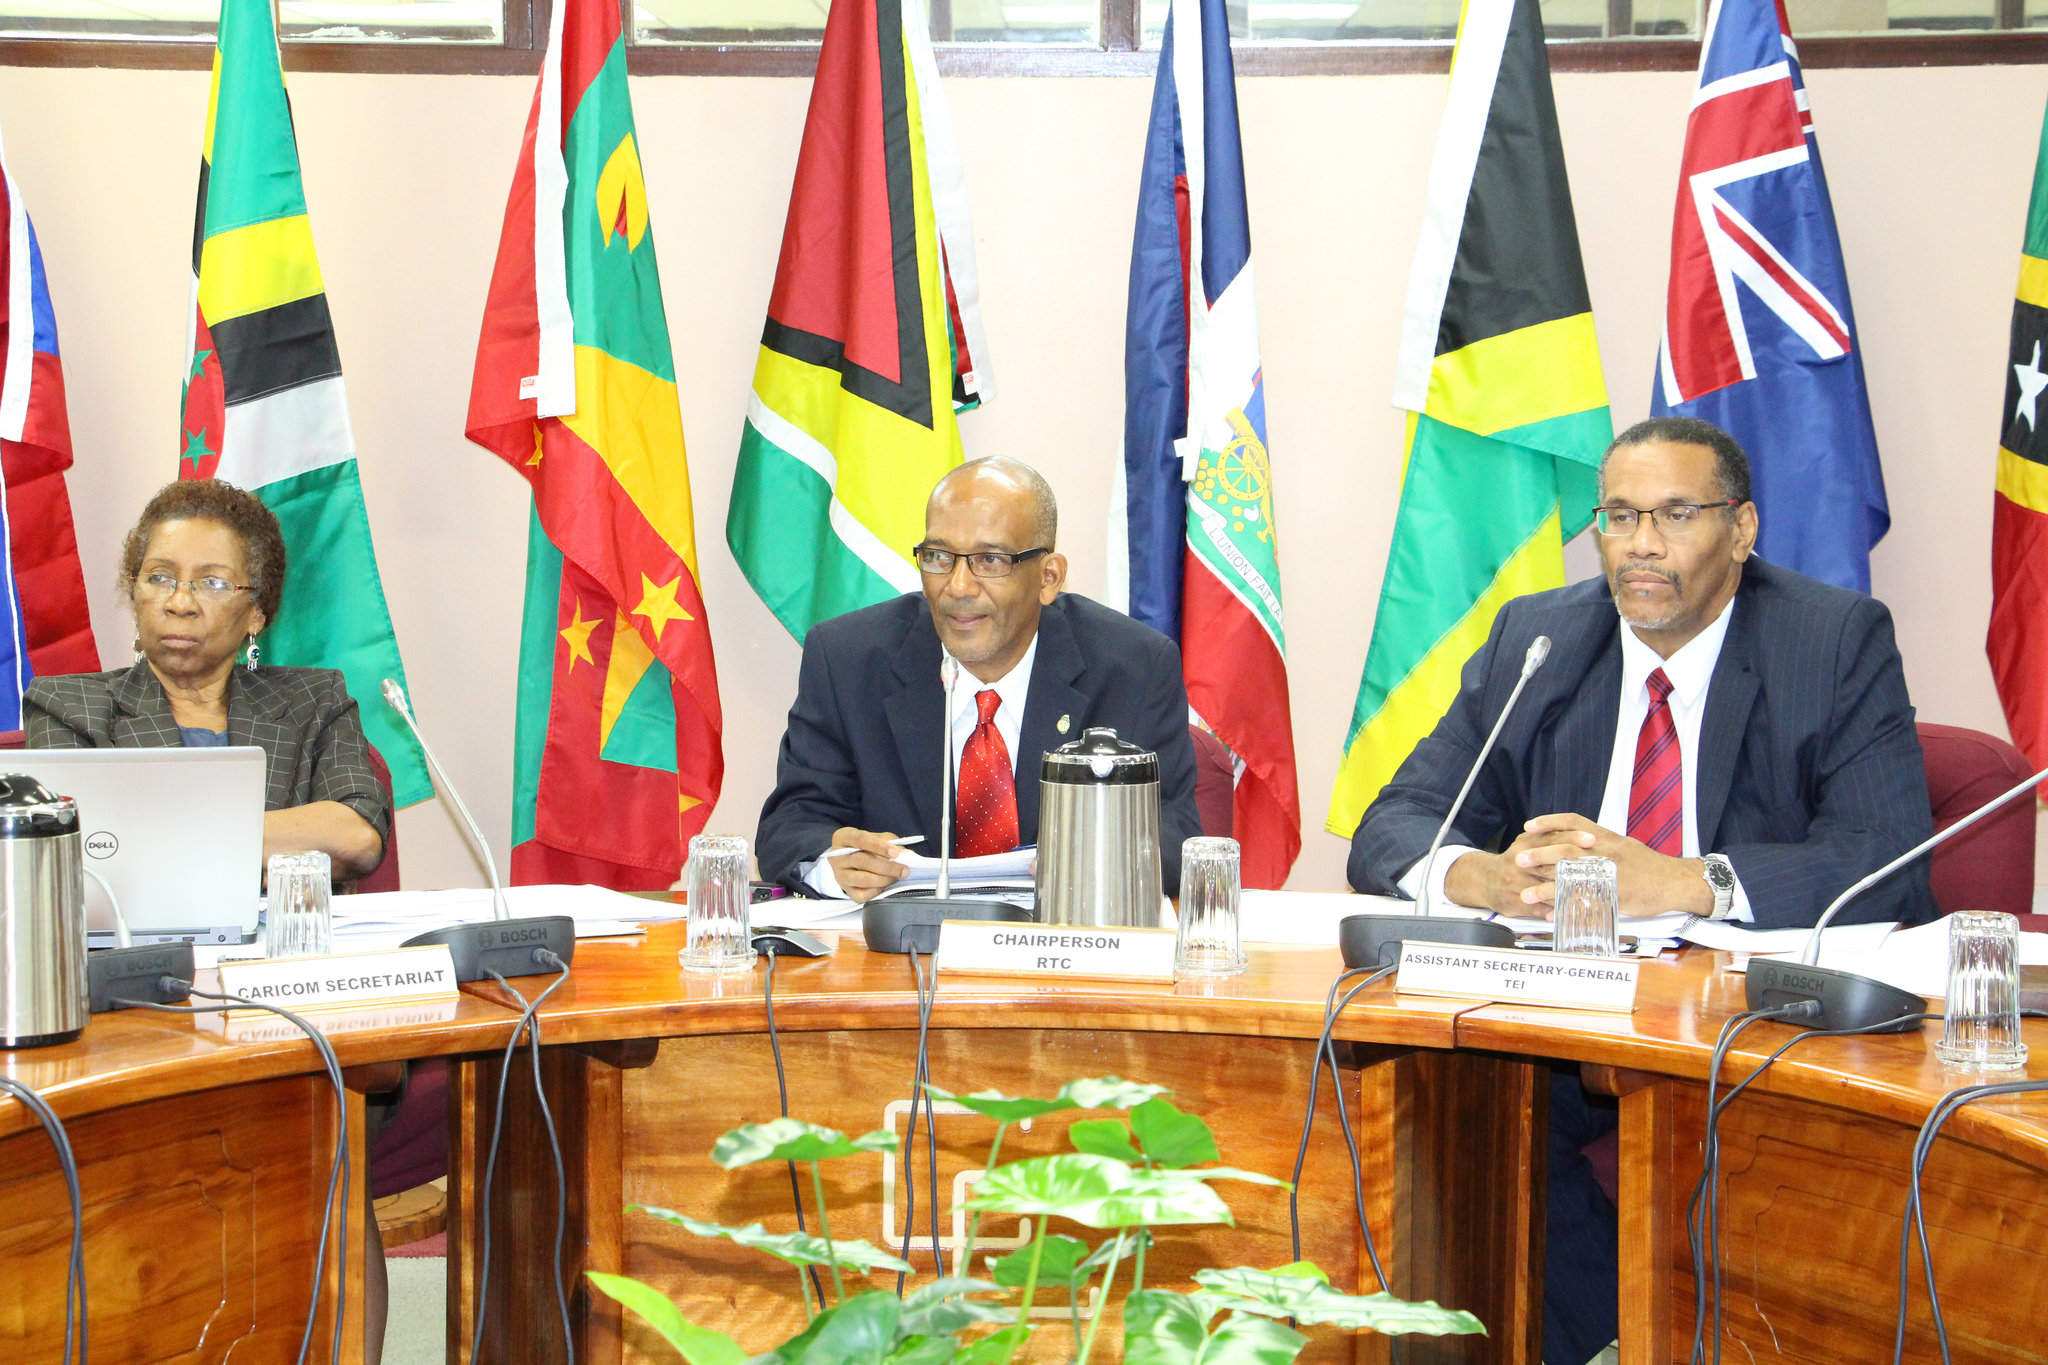 From left, Ms. Desiree Field-Ridley, Adviser, Single Market and Sectoral Programmes, CARICOM Secretariat, Mr. Godfred Pompey, Permanent Secretary, Ministry of National Security, Air and Seaport Development, St. Vincent and the Grenadines and Chair of